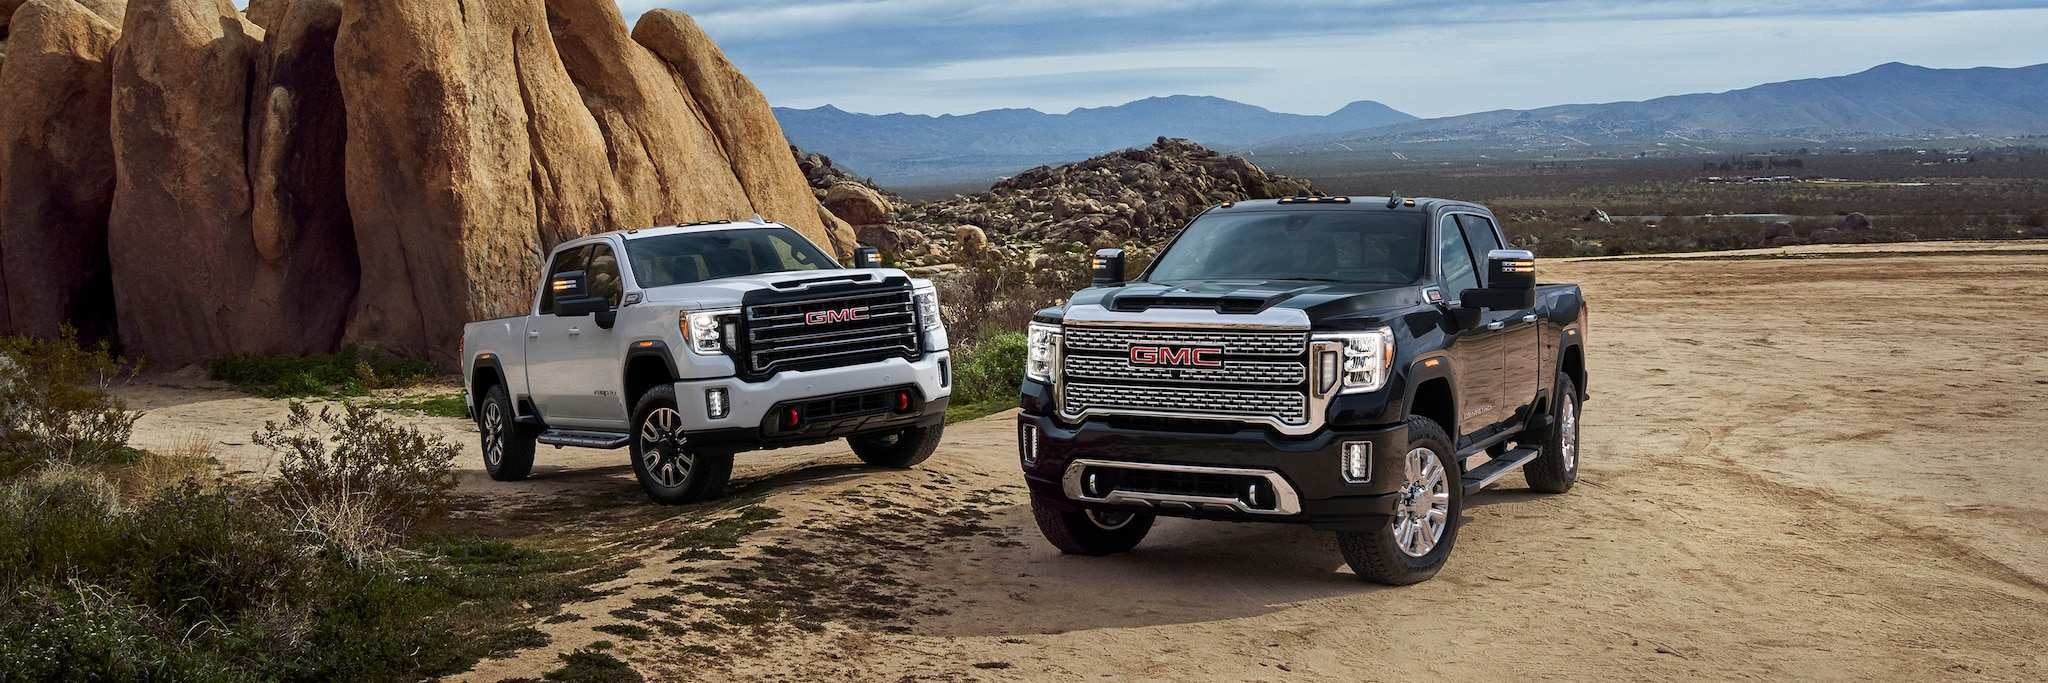 90 A Gmc New Truck 2020 Wallpaper